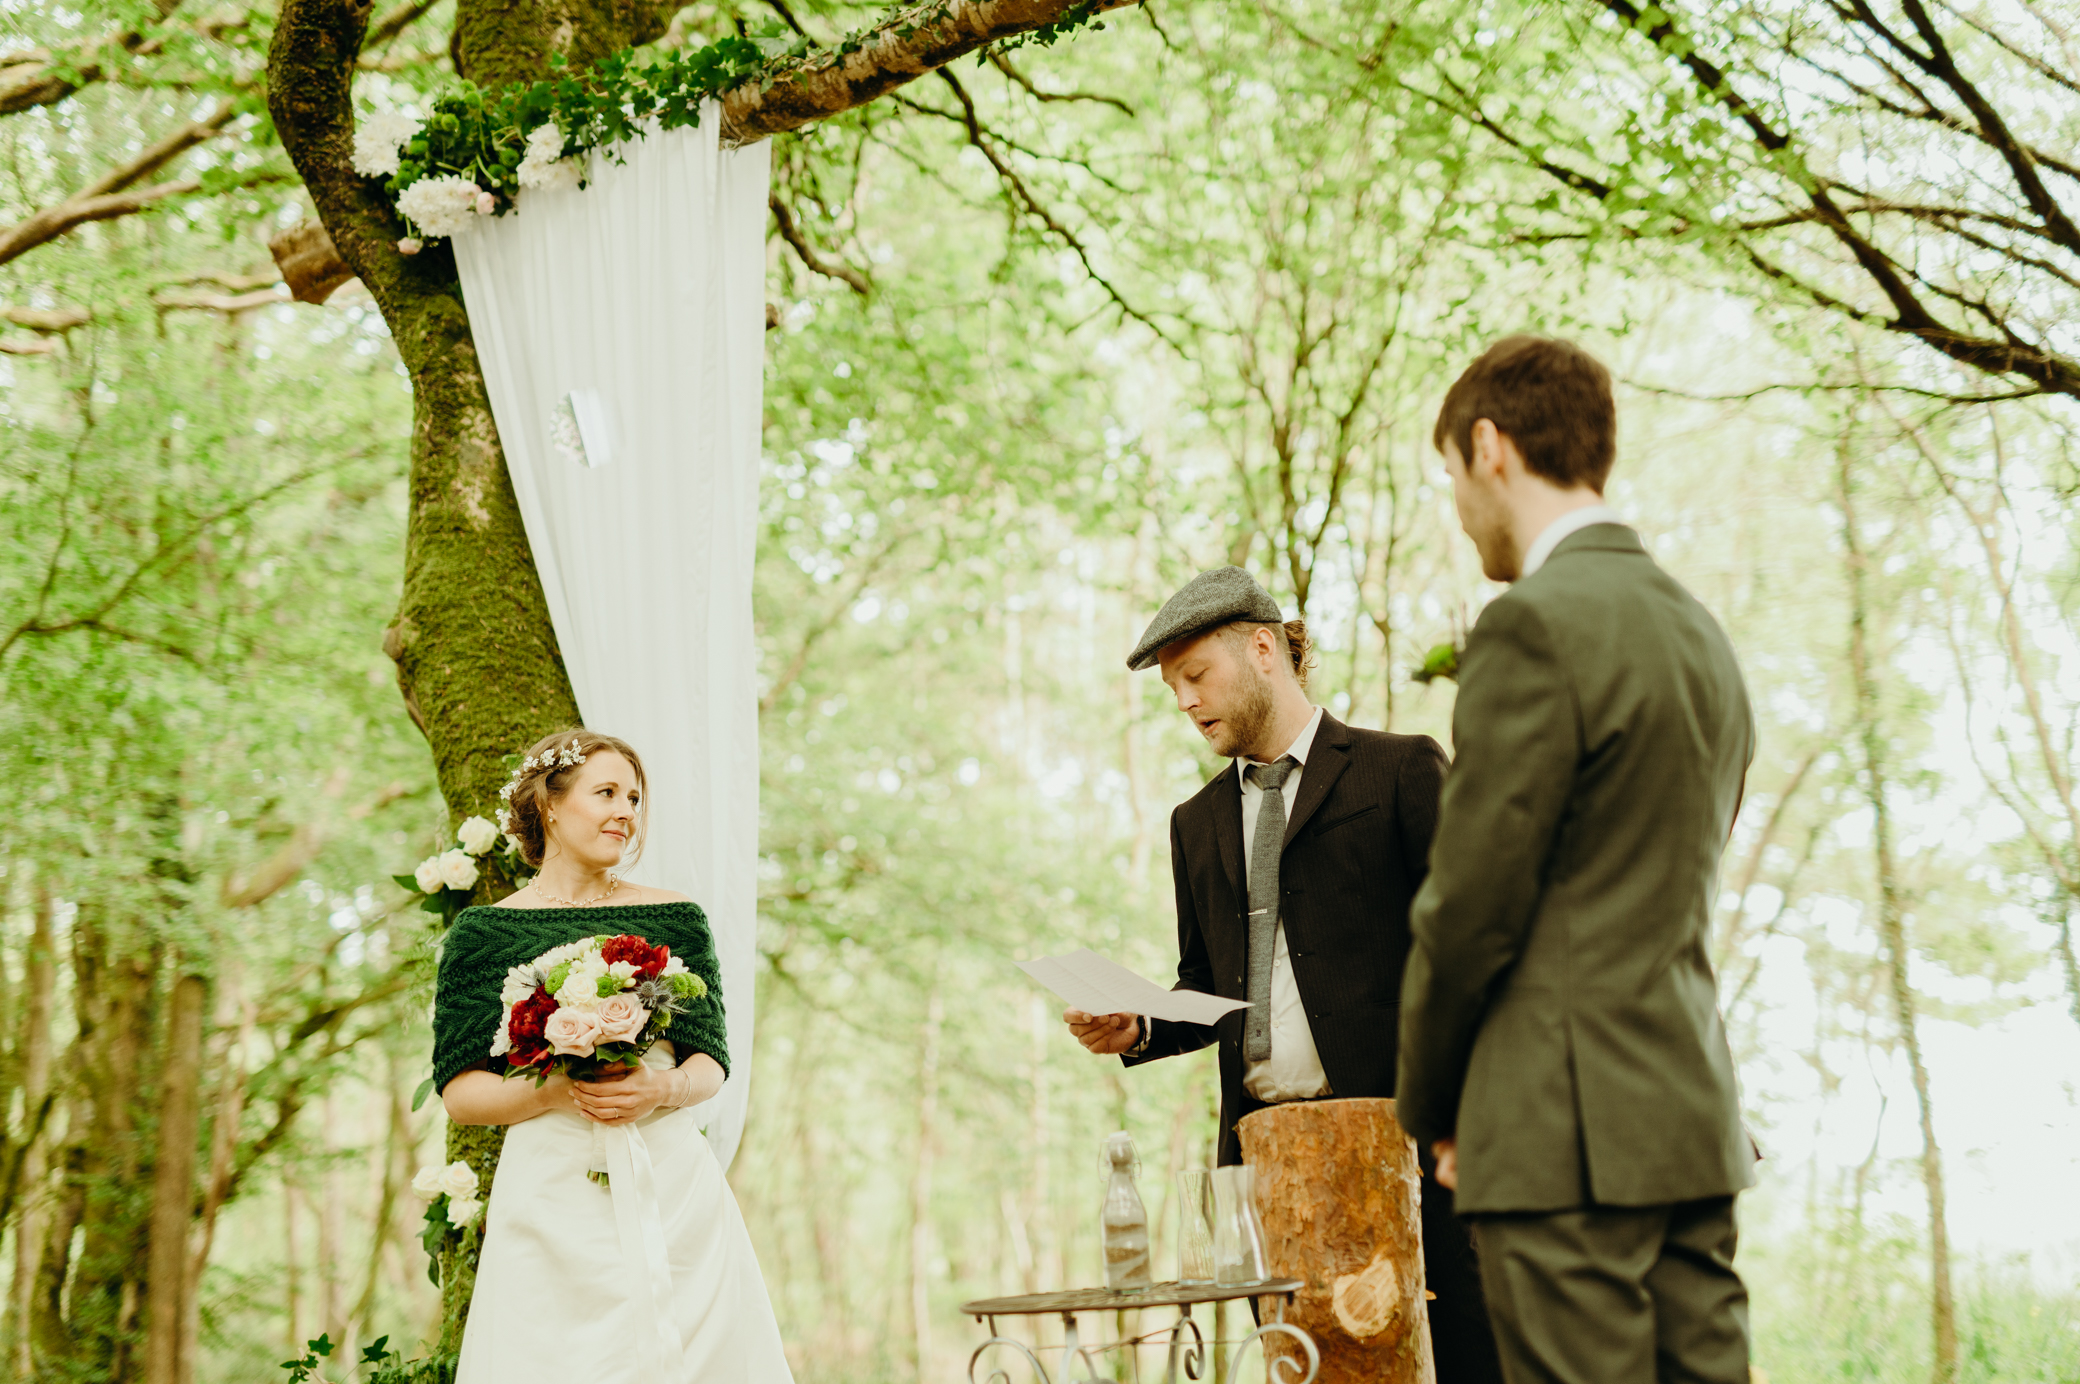 Alternative Wedding Ireland - Elopement photographer Ireland - Destination Photographer Europe-52.jpg